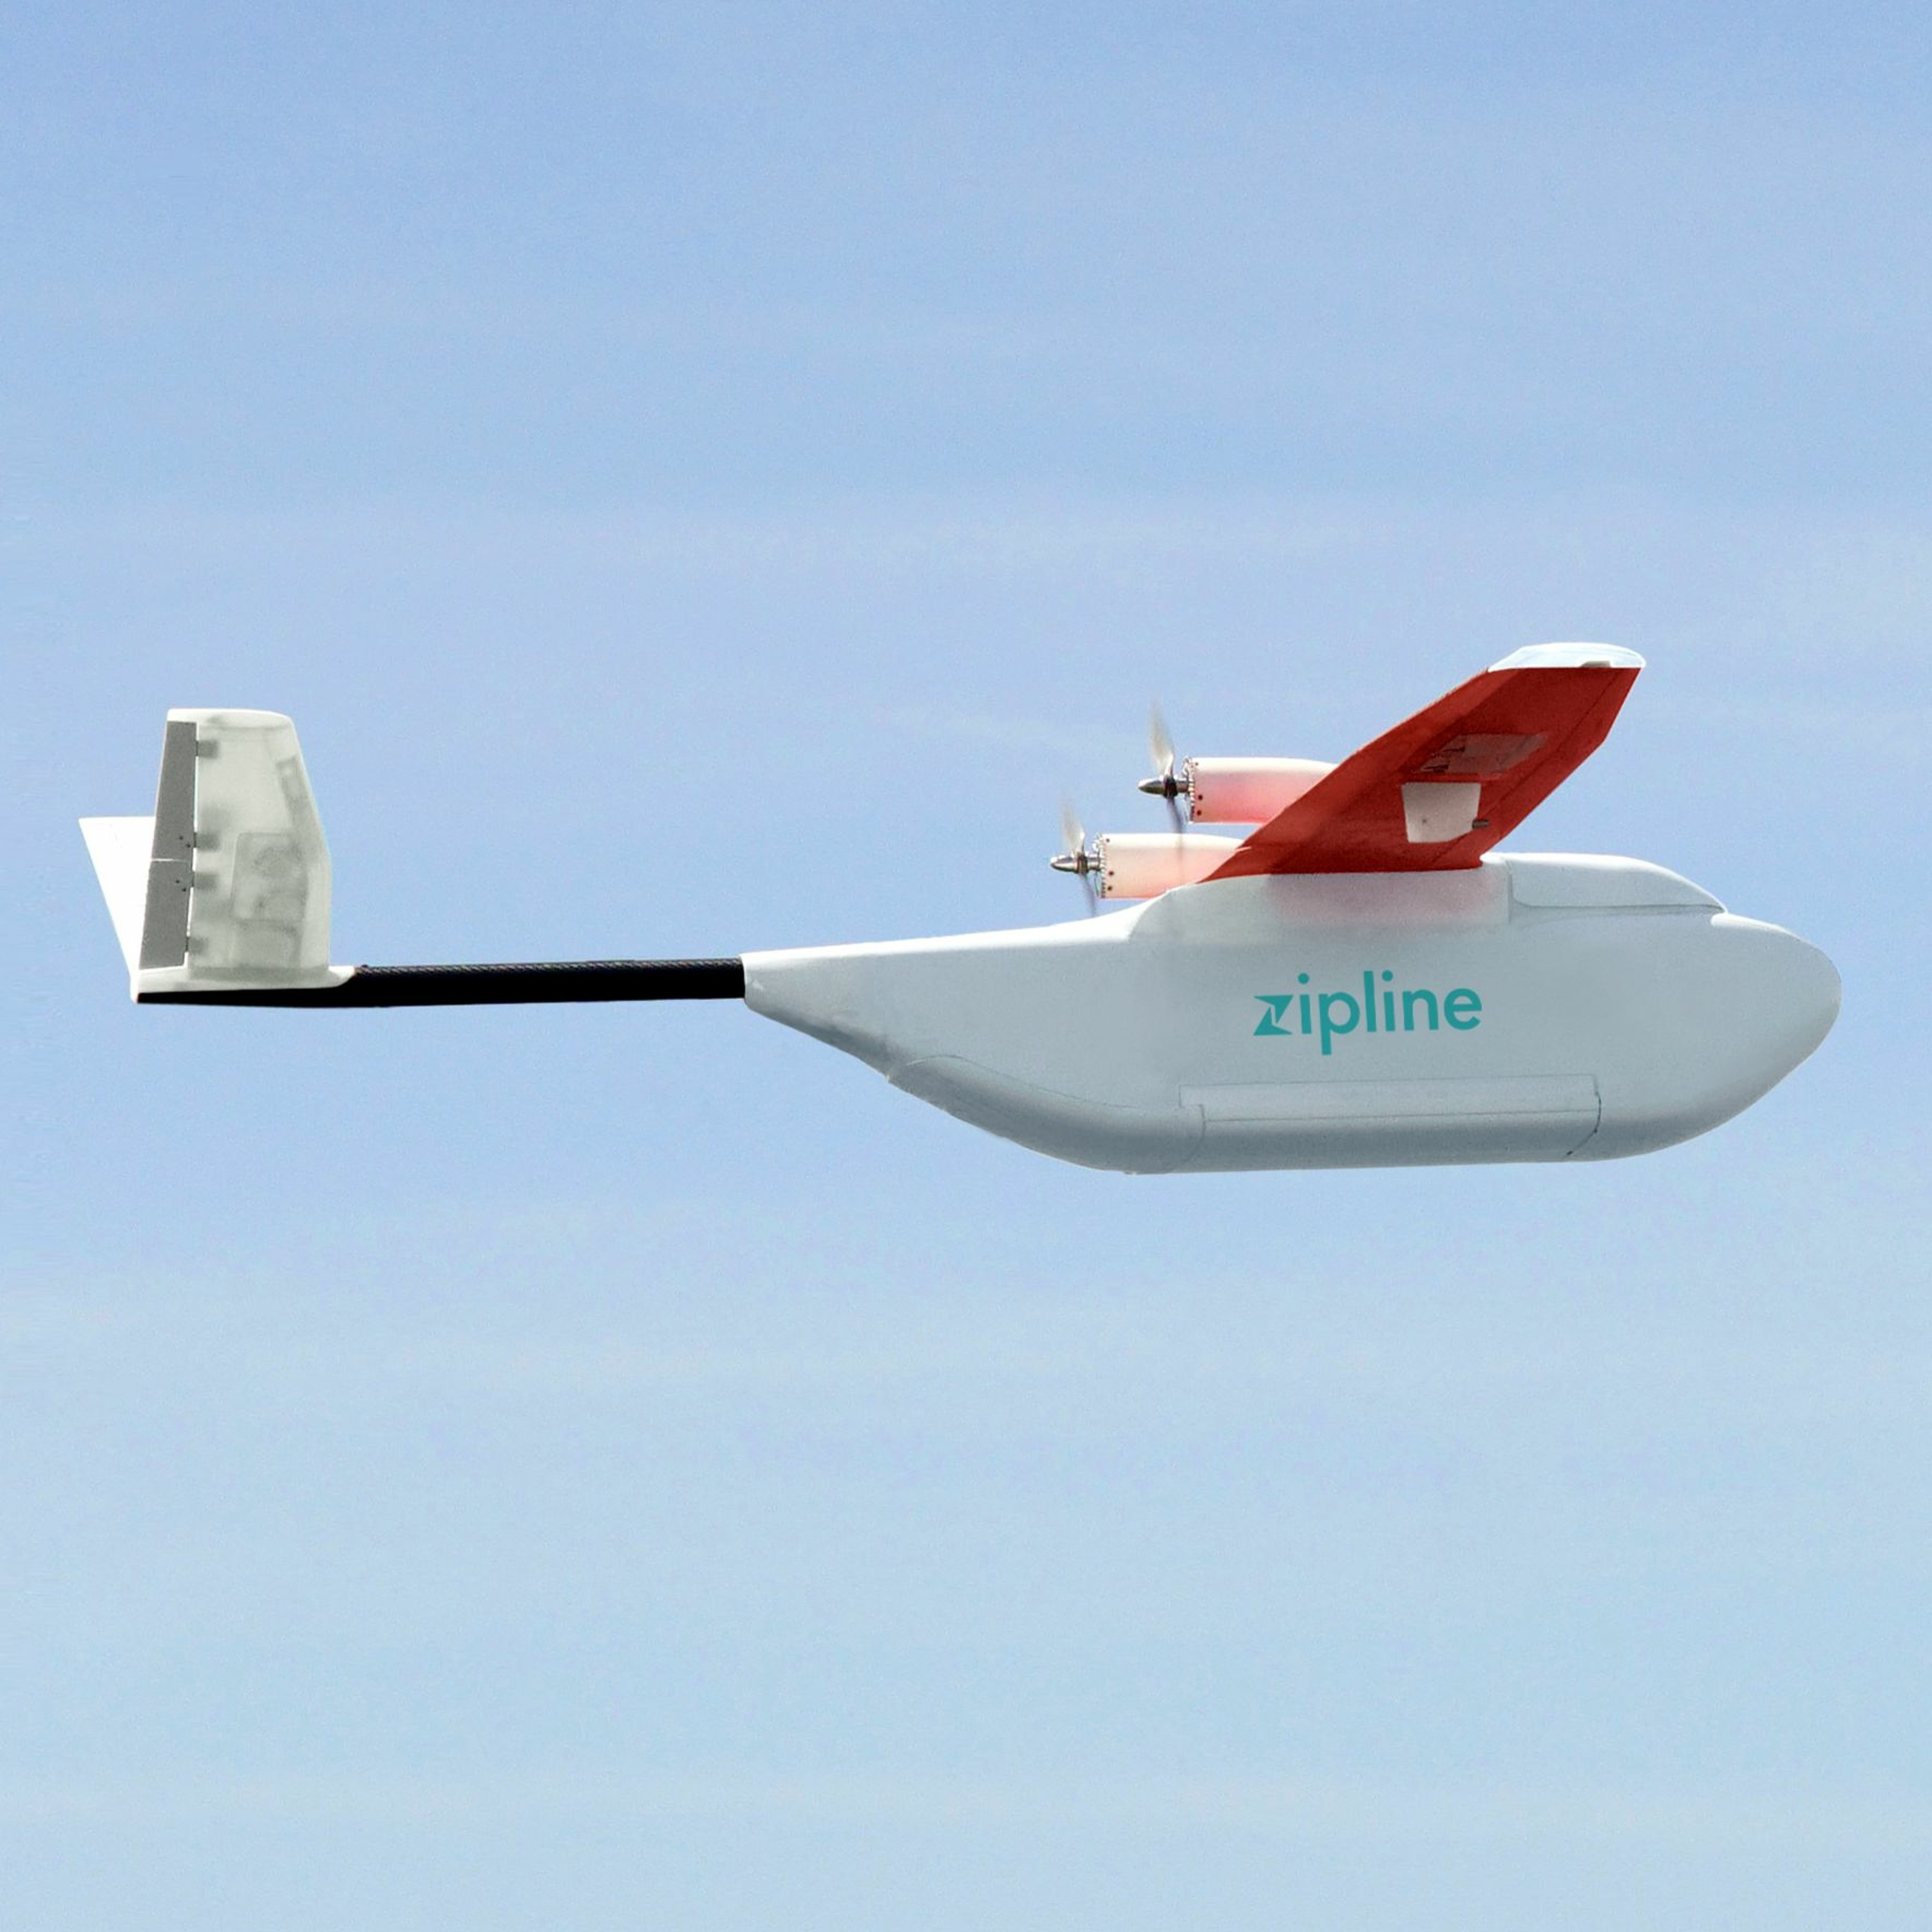 Rwanda Launches World's First Drone Delivery Service